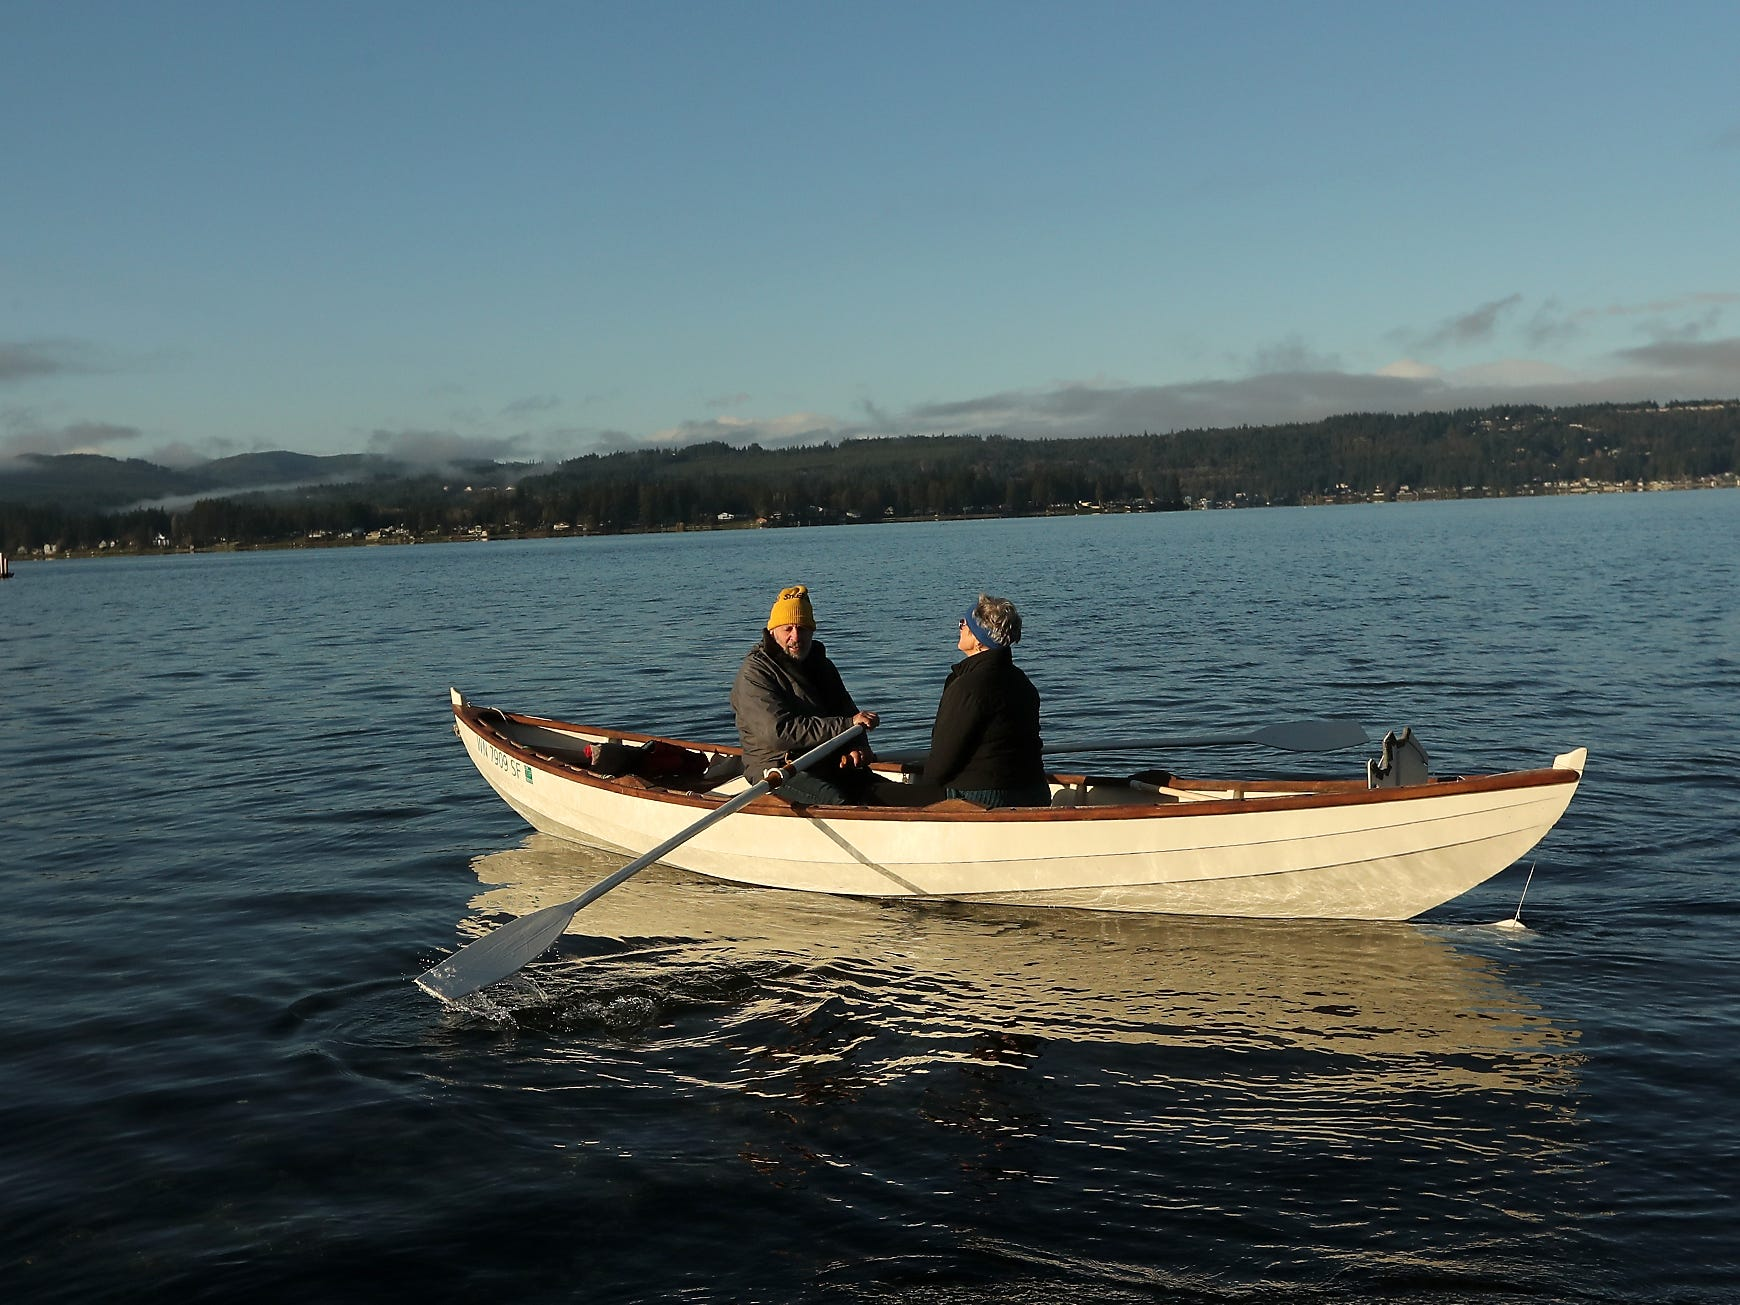 Rich Hladky and Heather McHugh take advantage of the morning sunshine and head out for a paddle in Hladky's row boat, at the Tracyton boat launch on Monday, January 7, 2019.